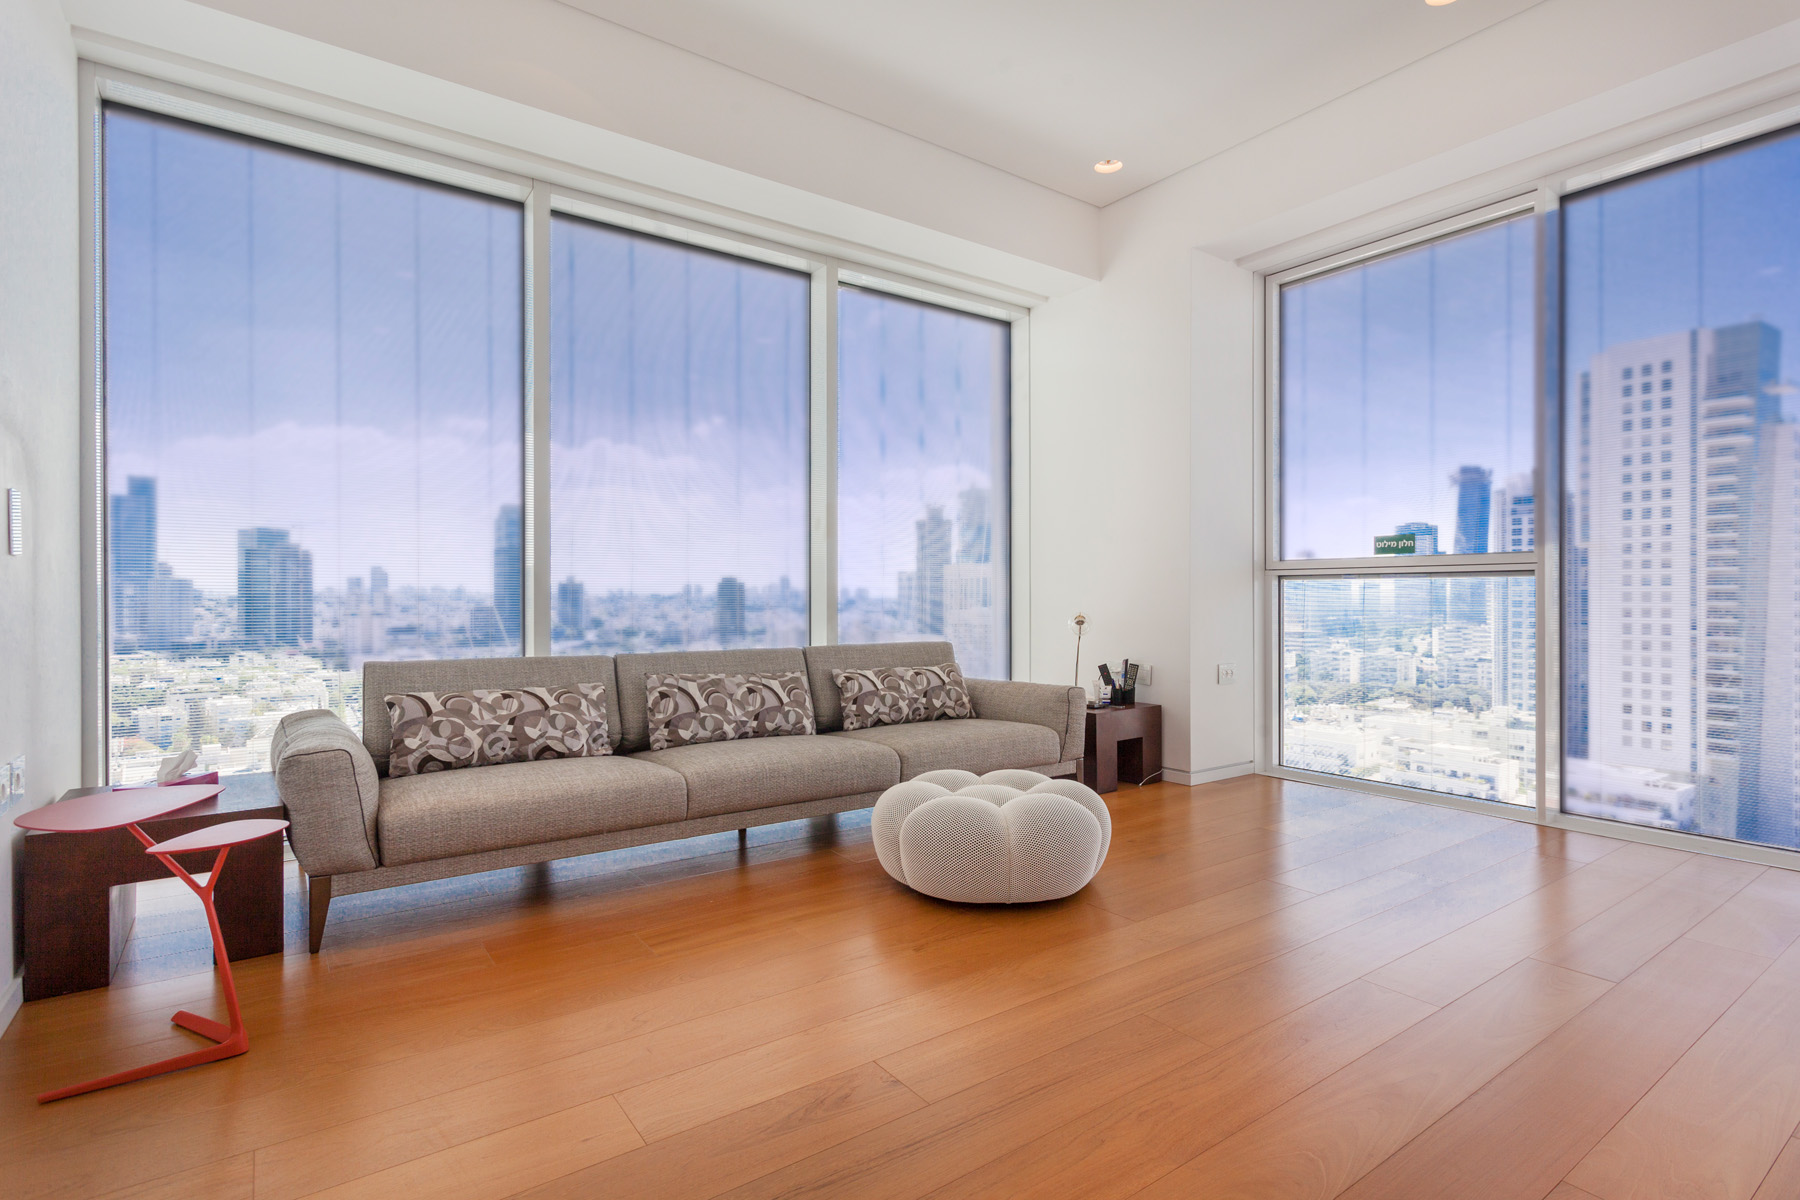 Additional photo for property listing at Modern Luxury Apartment With Incomparable Views Tel Aviv, Israel Israel